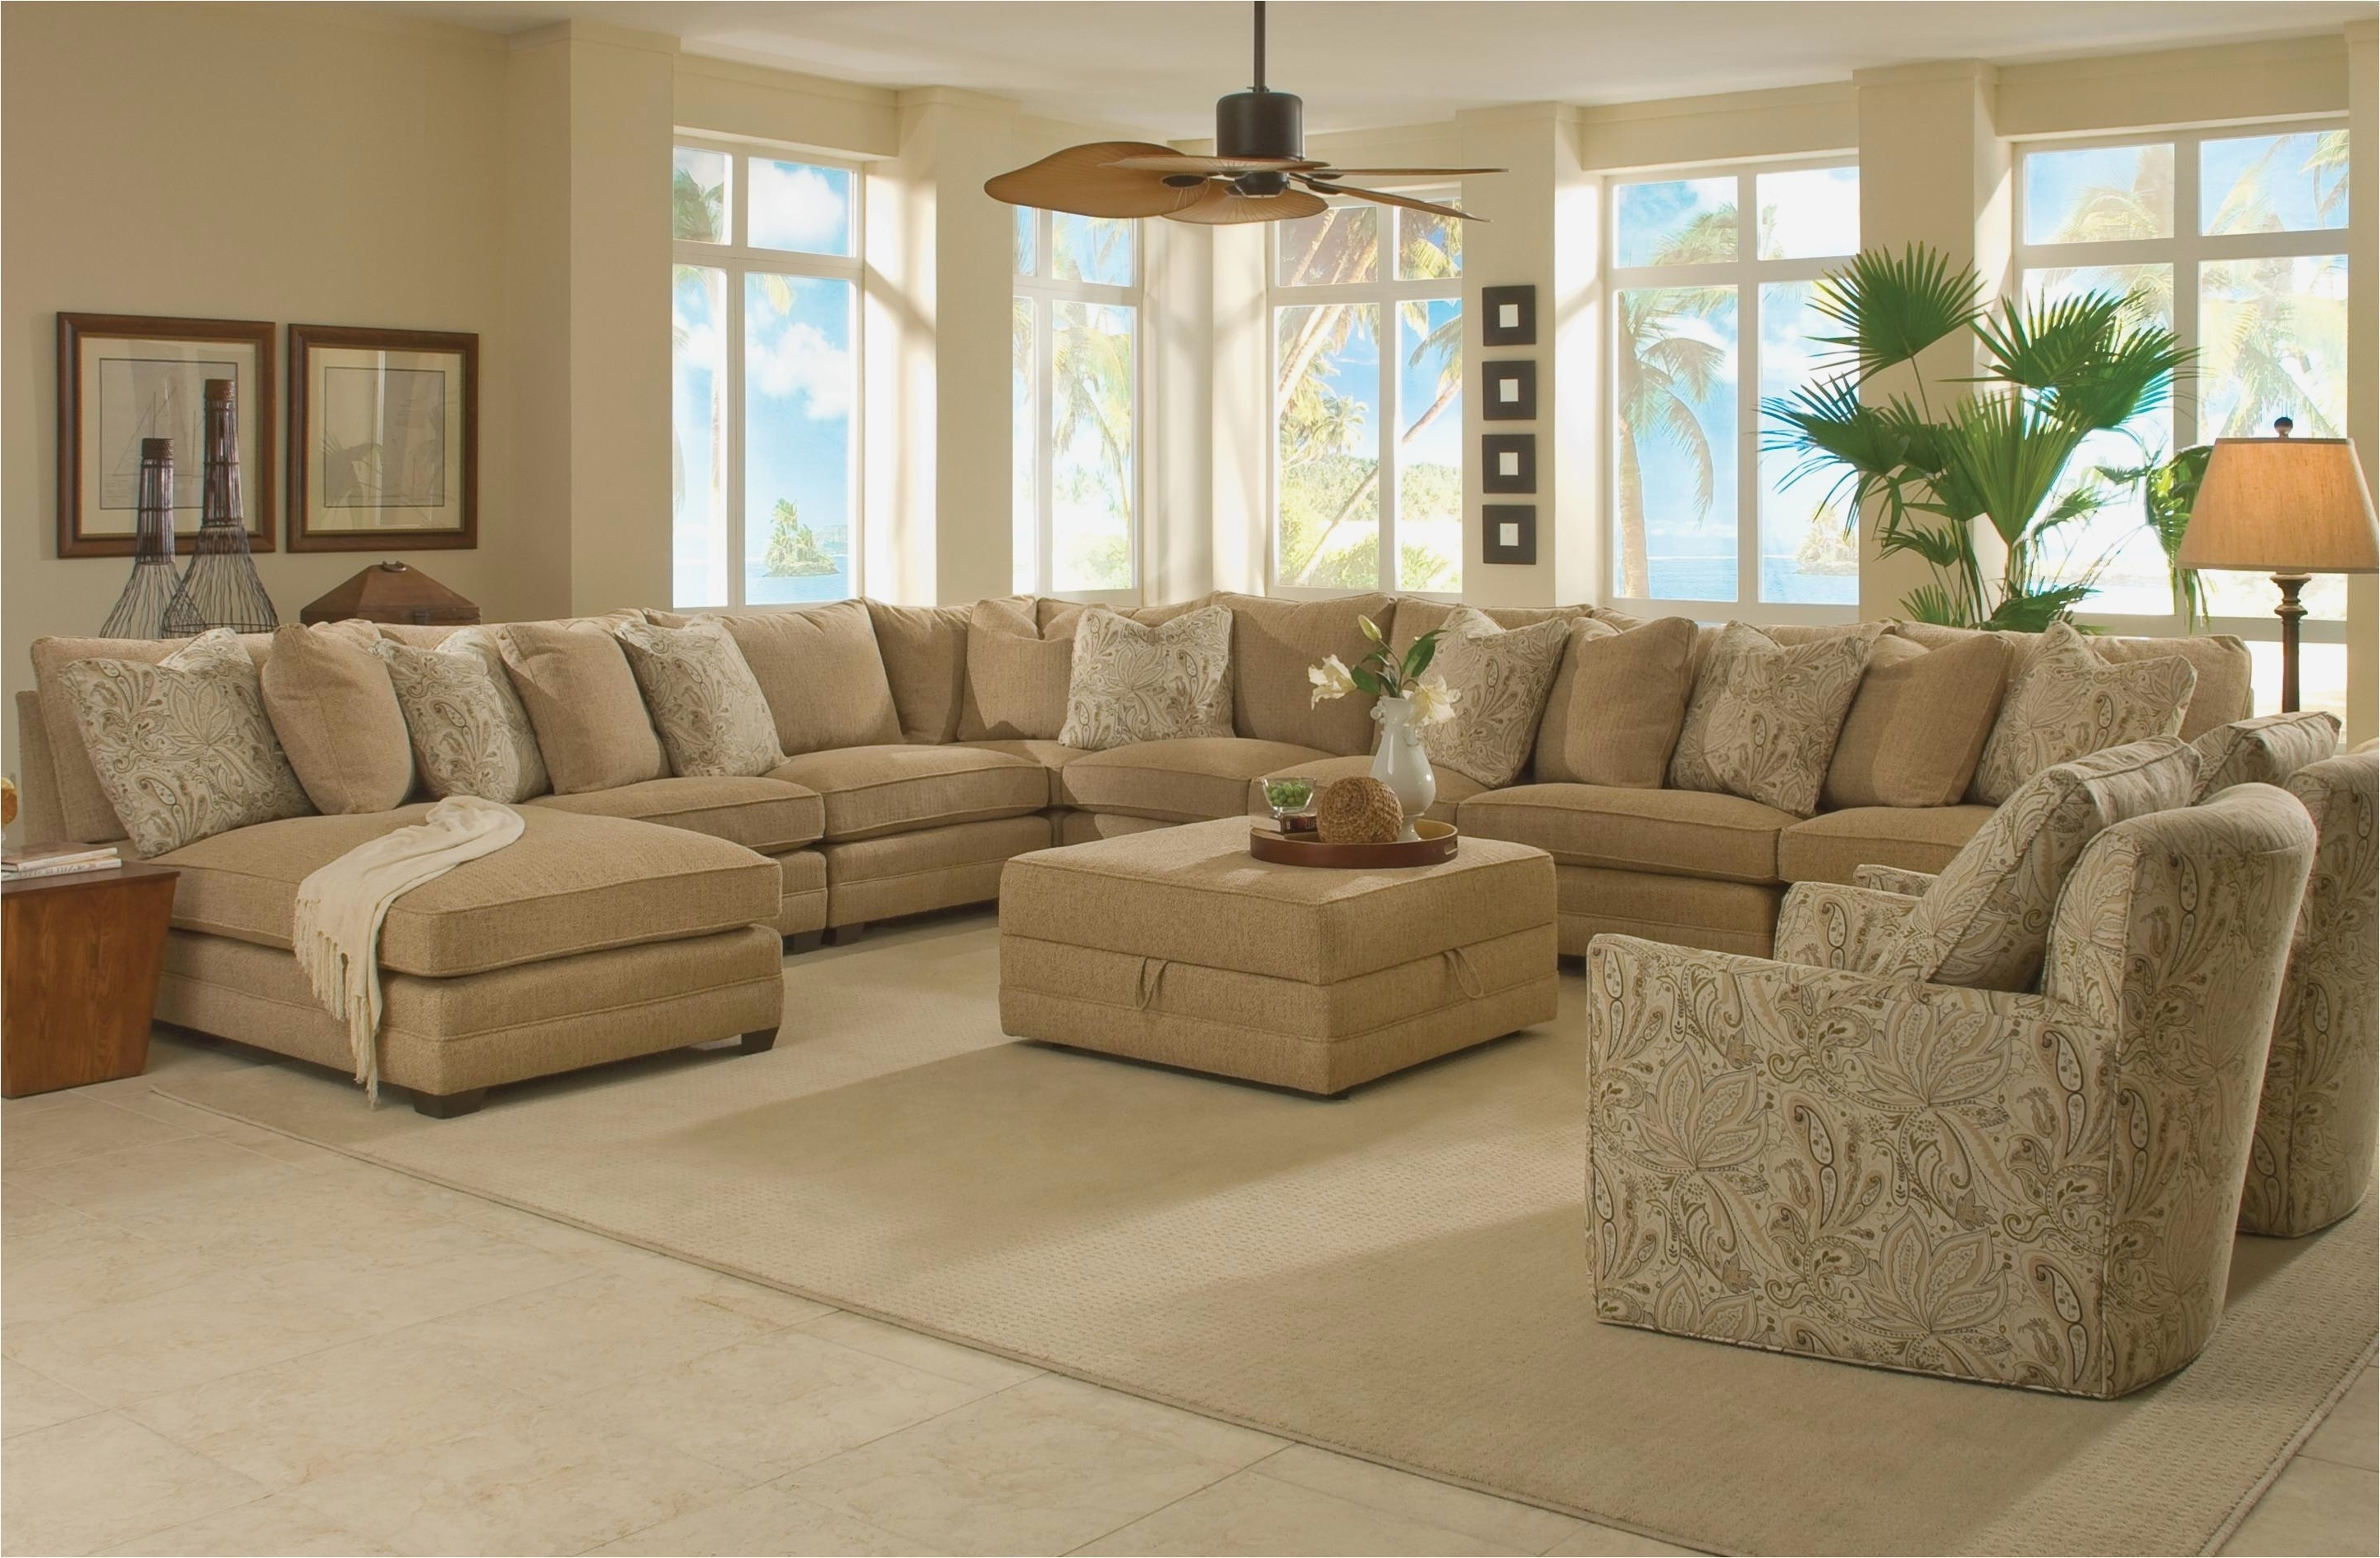 2019 Wide Seat Sectional Sofas Intended For Deep Seated Couch Lovely Wide Seat Sectional Sofas (View 3 of 20)